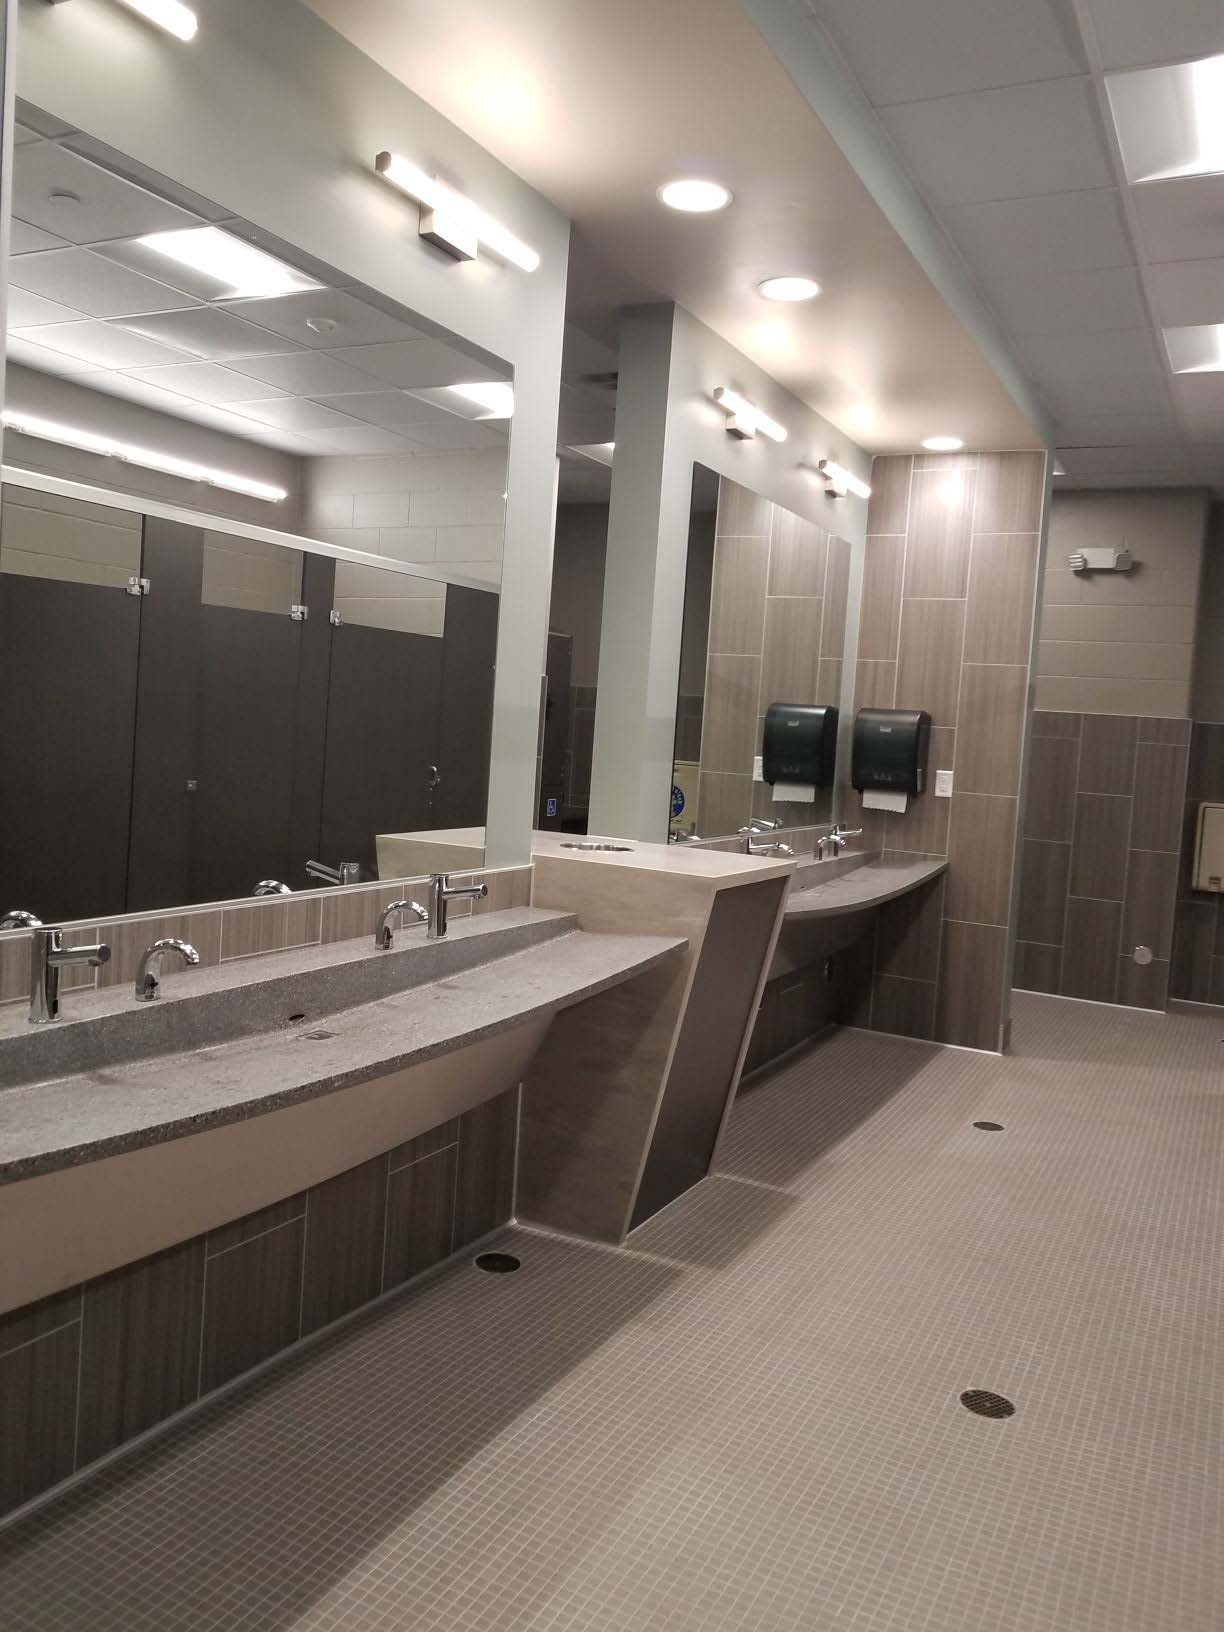 Modern gray/brown bathroom doors, off white tile,  counter tops and floors, mirrors, hanging lights